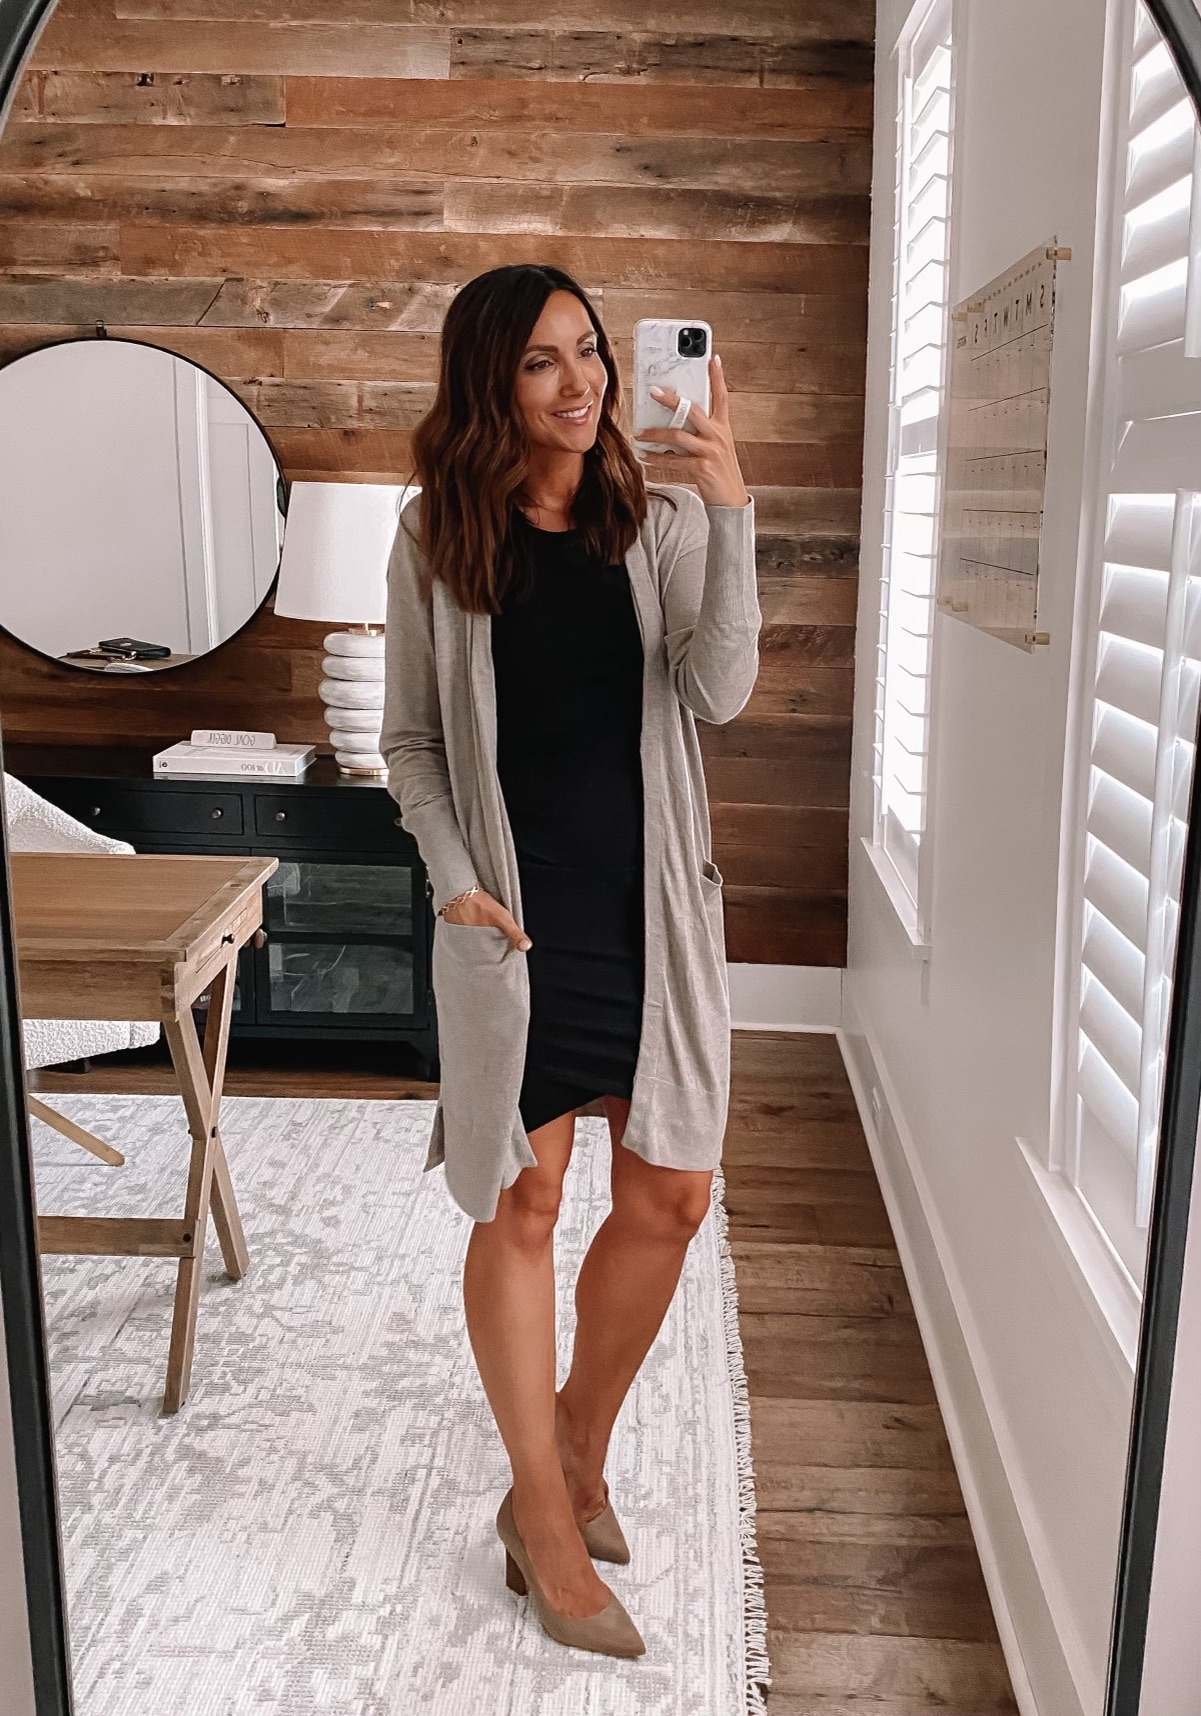 workwear outfit with dress and cardigan